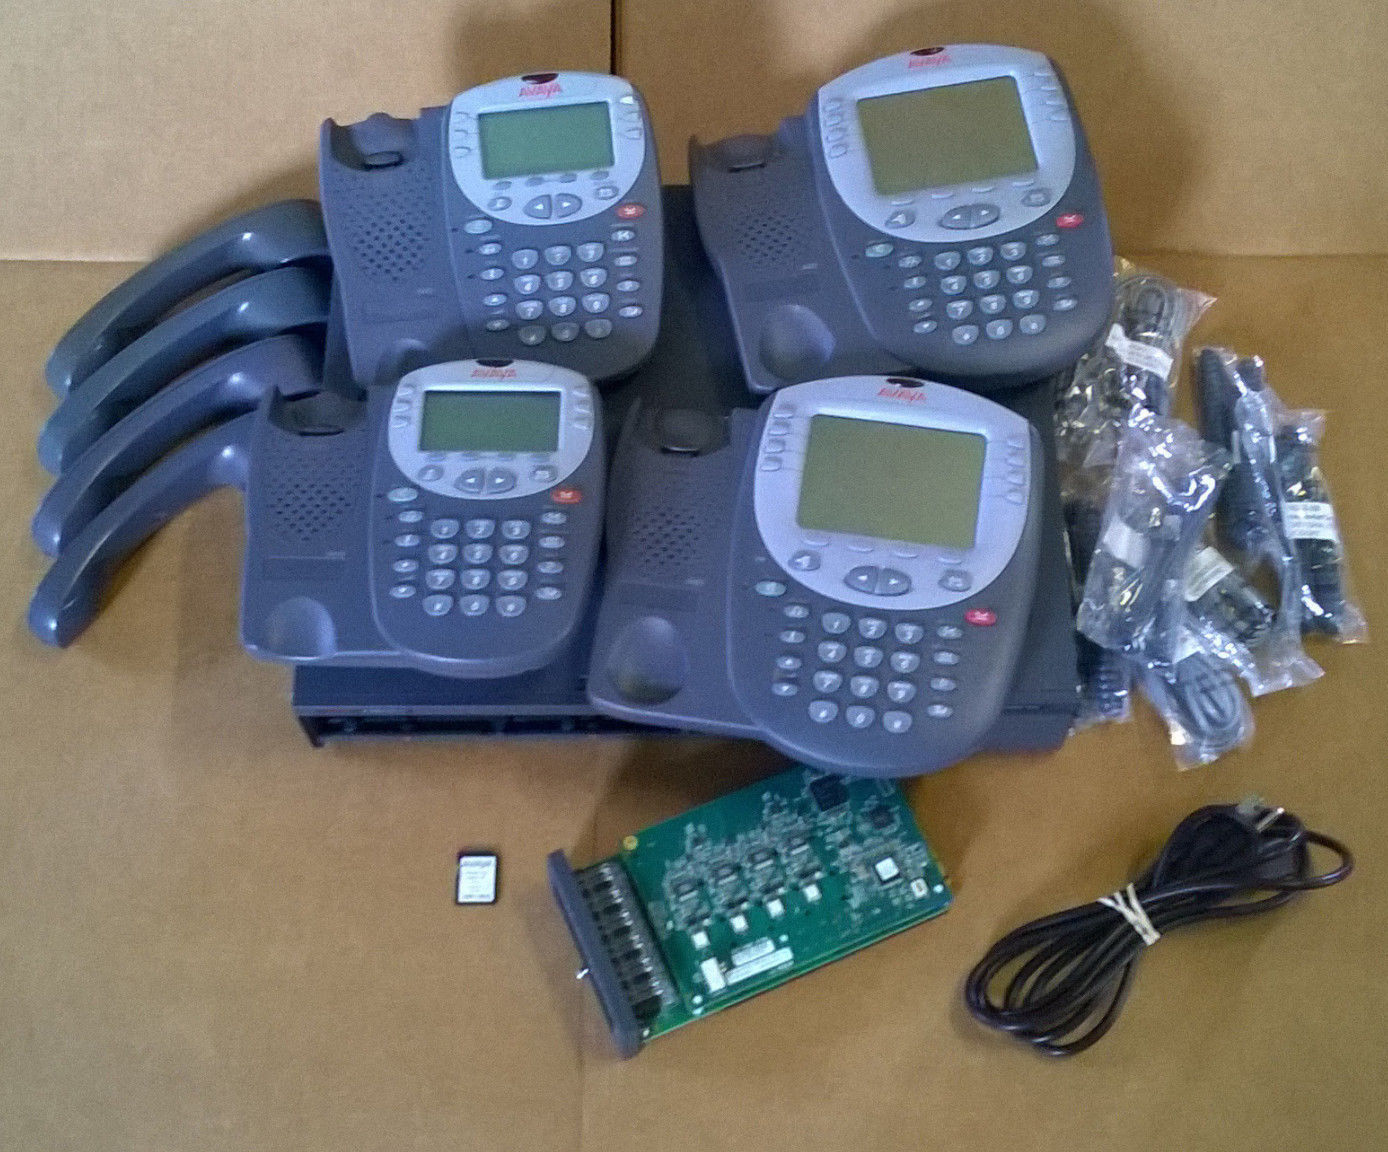 Avaya IP Office 500 V2 Business Phone System VMail 700476005 2 4610s 2 4621SW IP